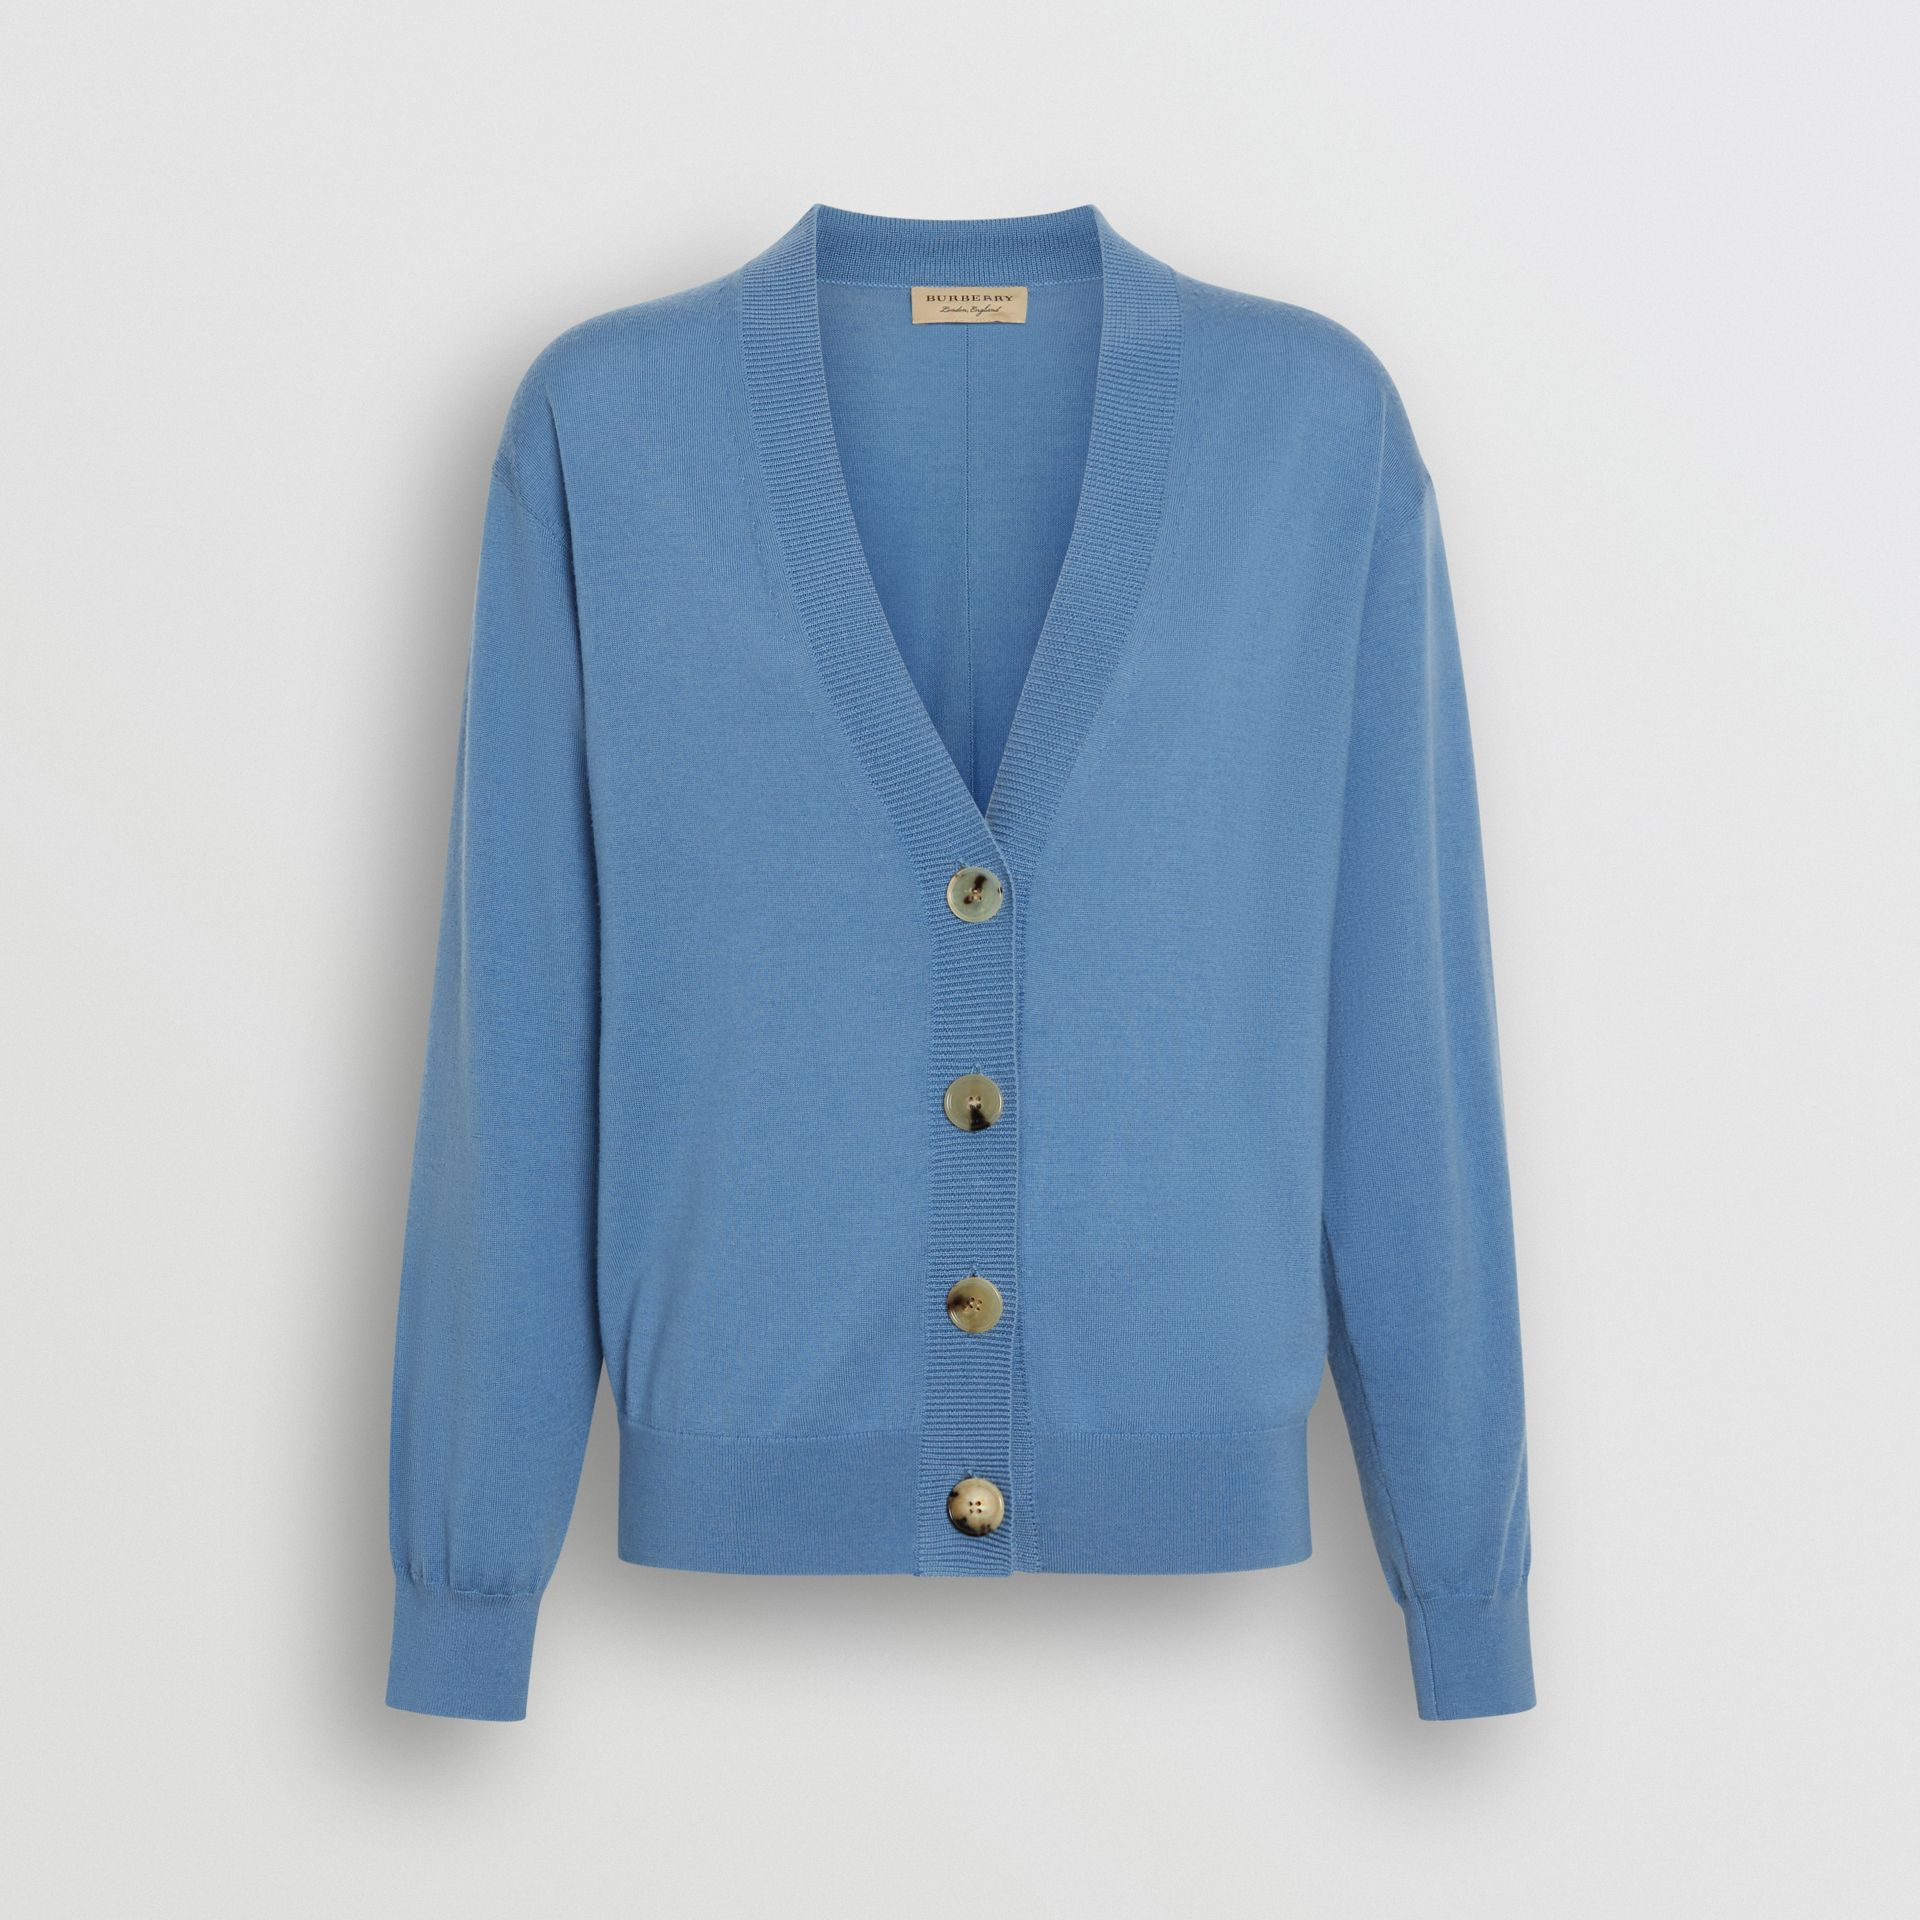 Logo Detail Merino Wool Cardigan in Pebble Blue - Women | Burberry - gallery image 3